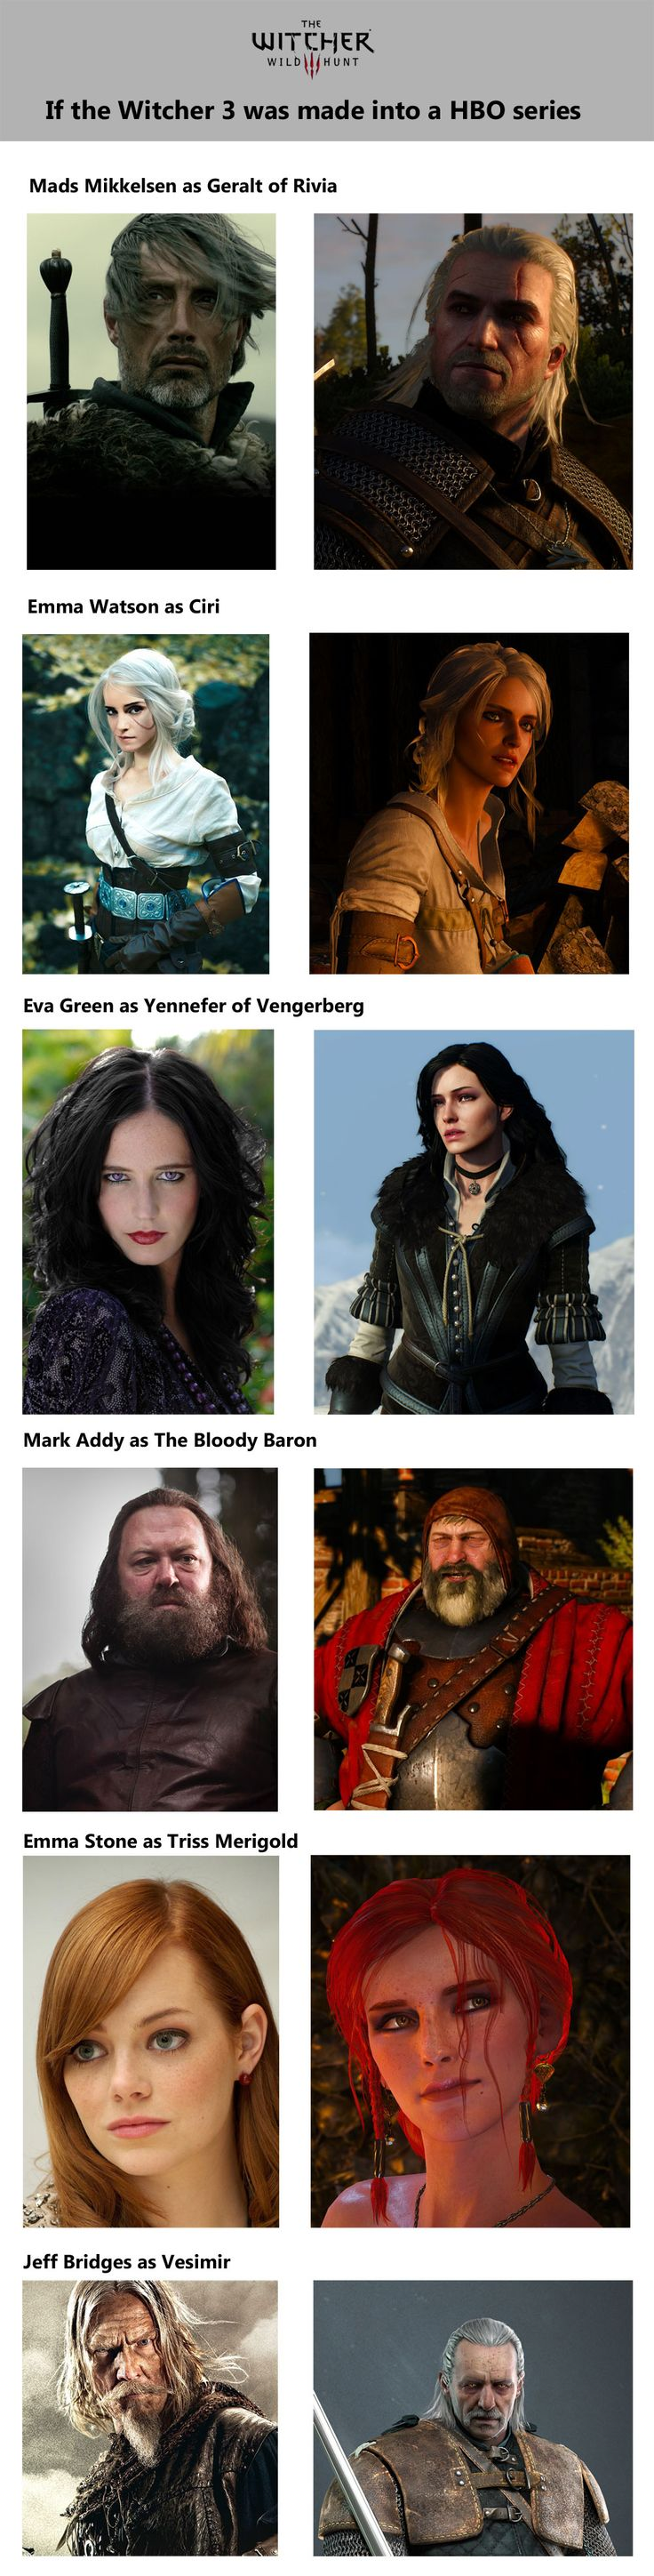 If the Witcher game series was turned into a HBO series or movie